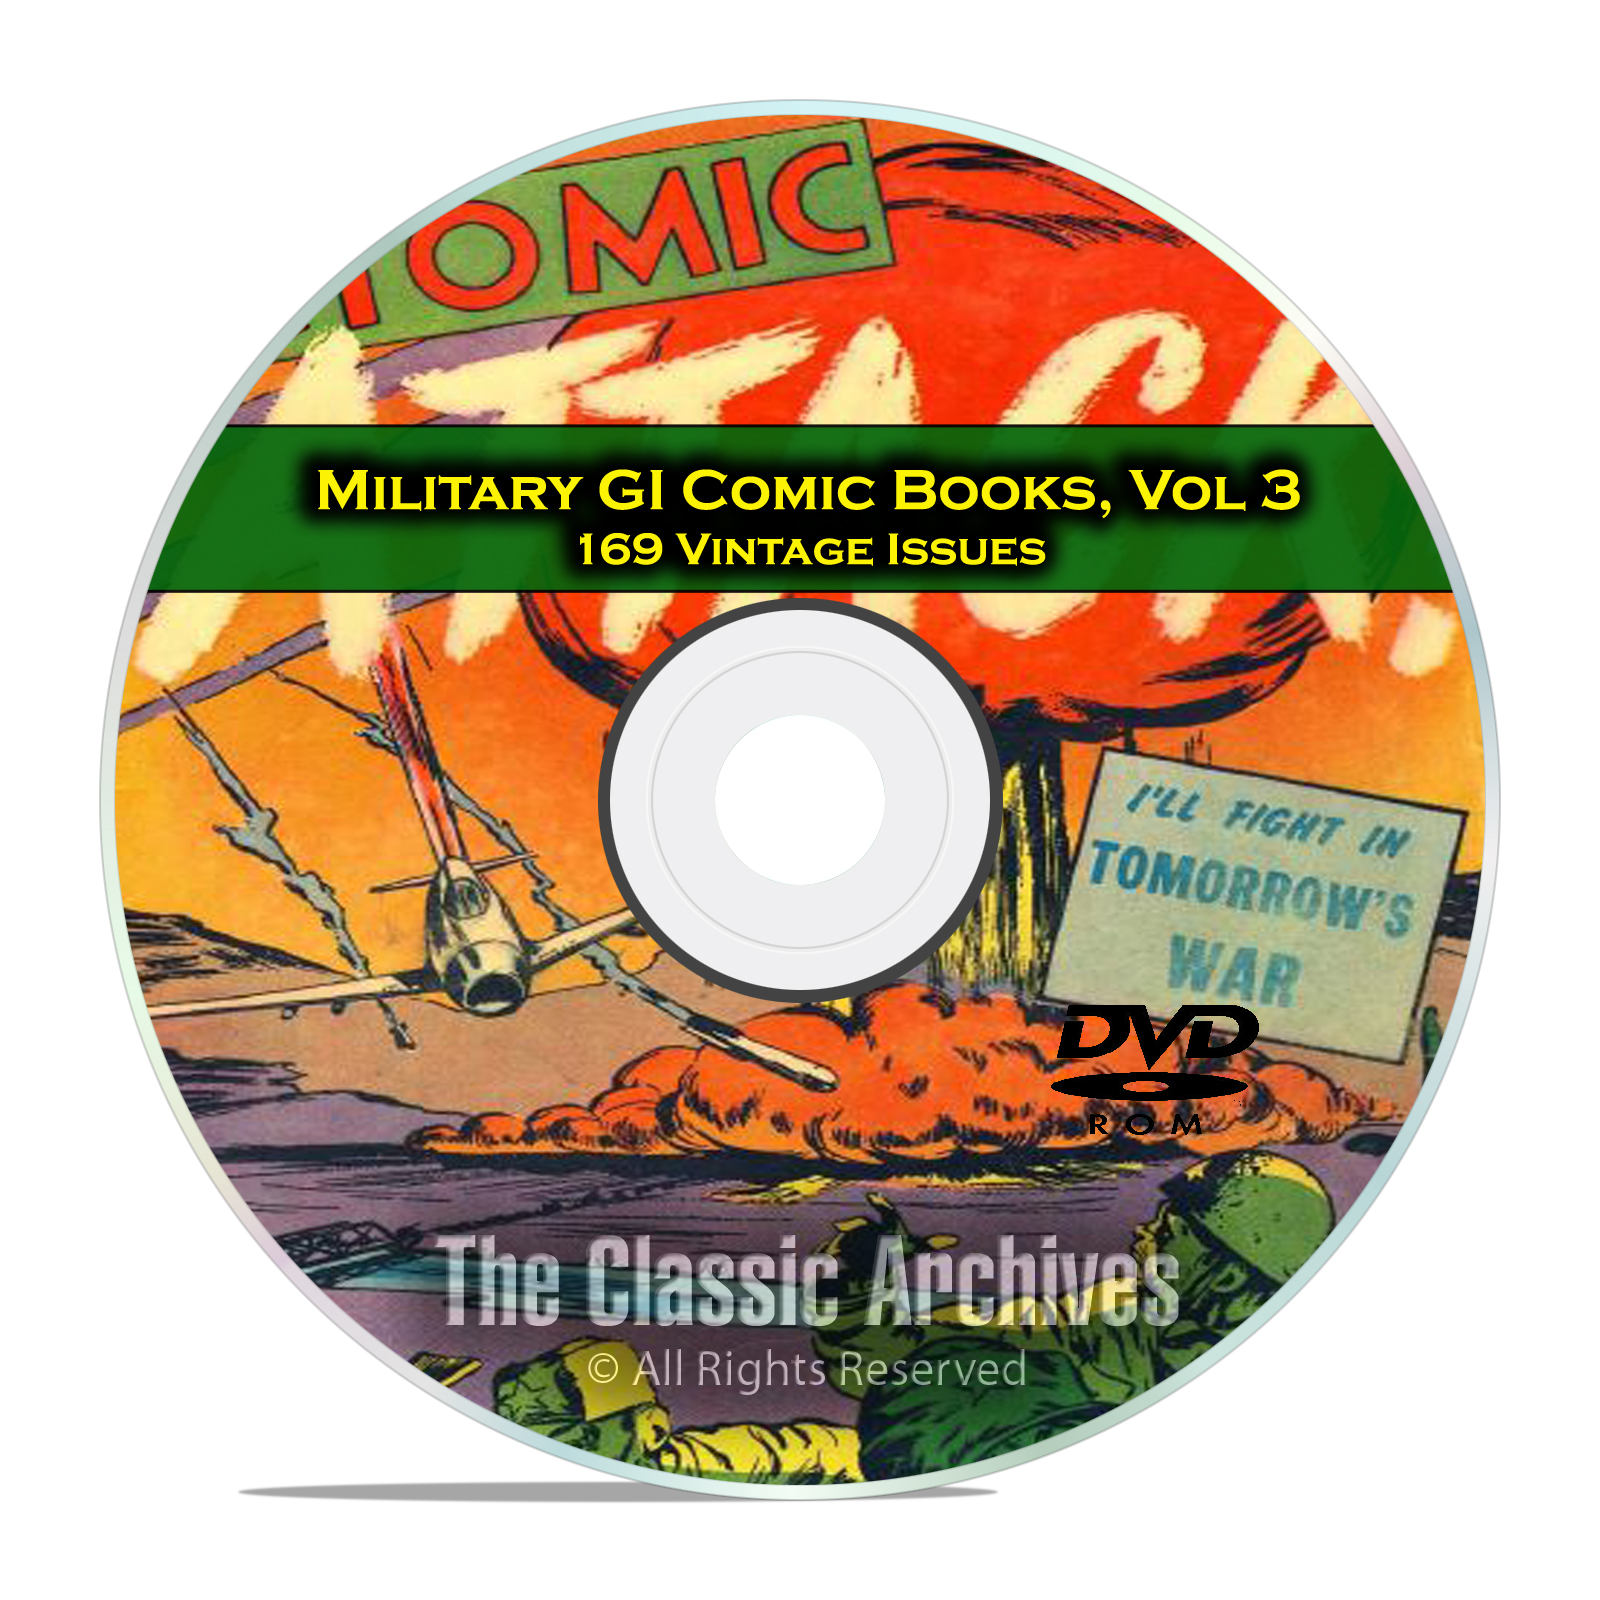 Military, Atomic Attack, Fightin Army, Marines, 169 Golden Age Comics DVD